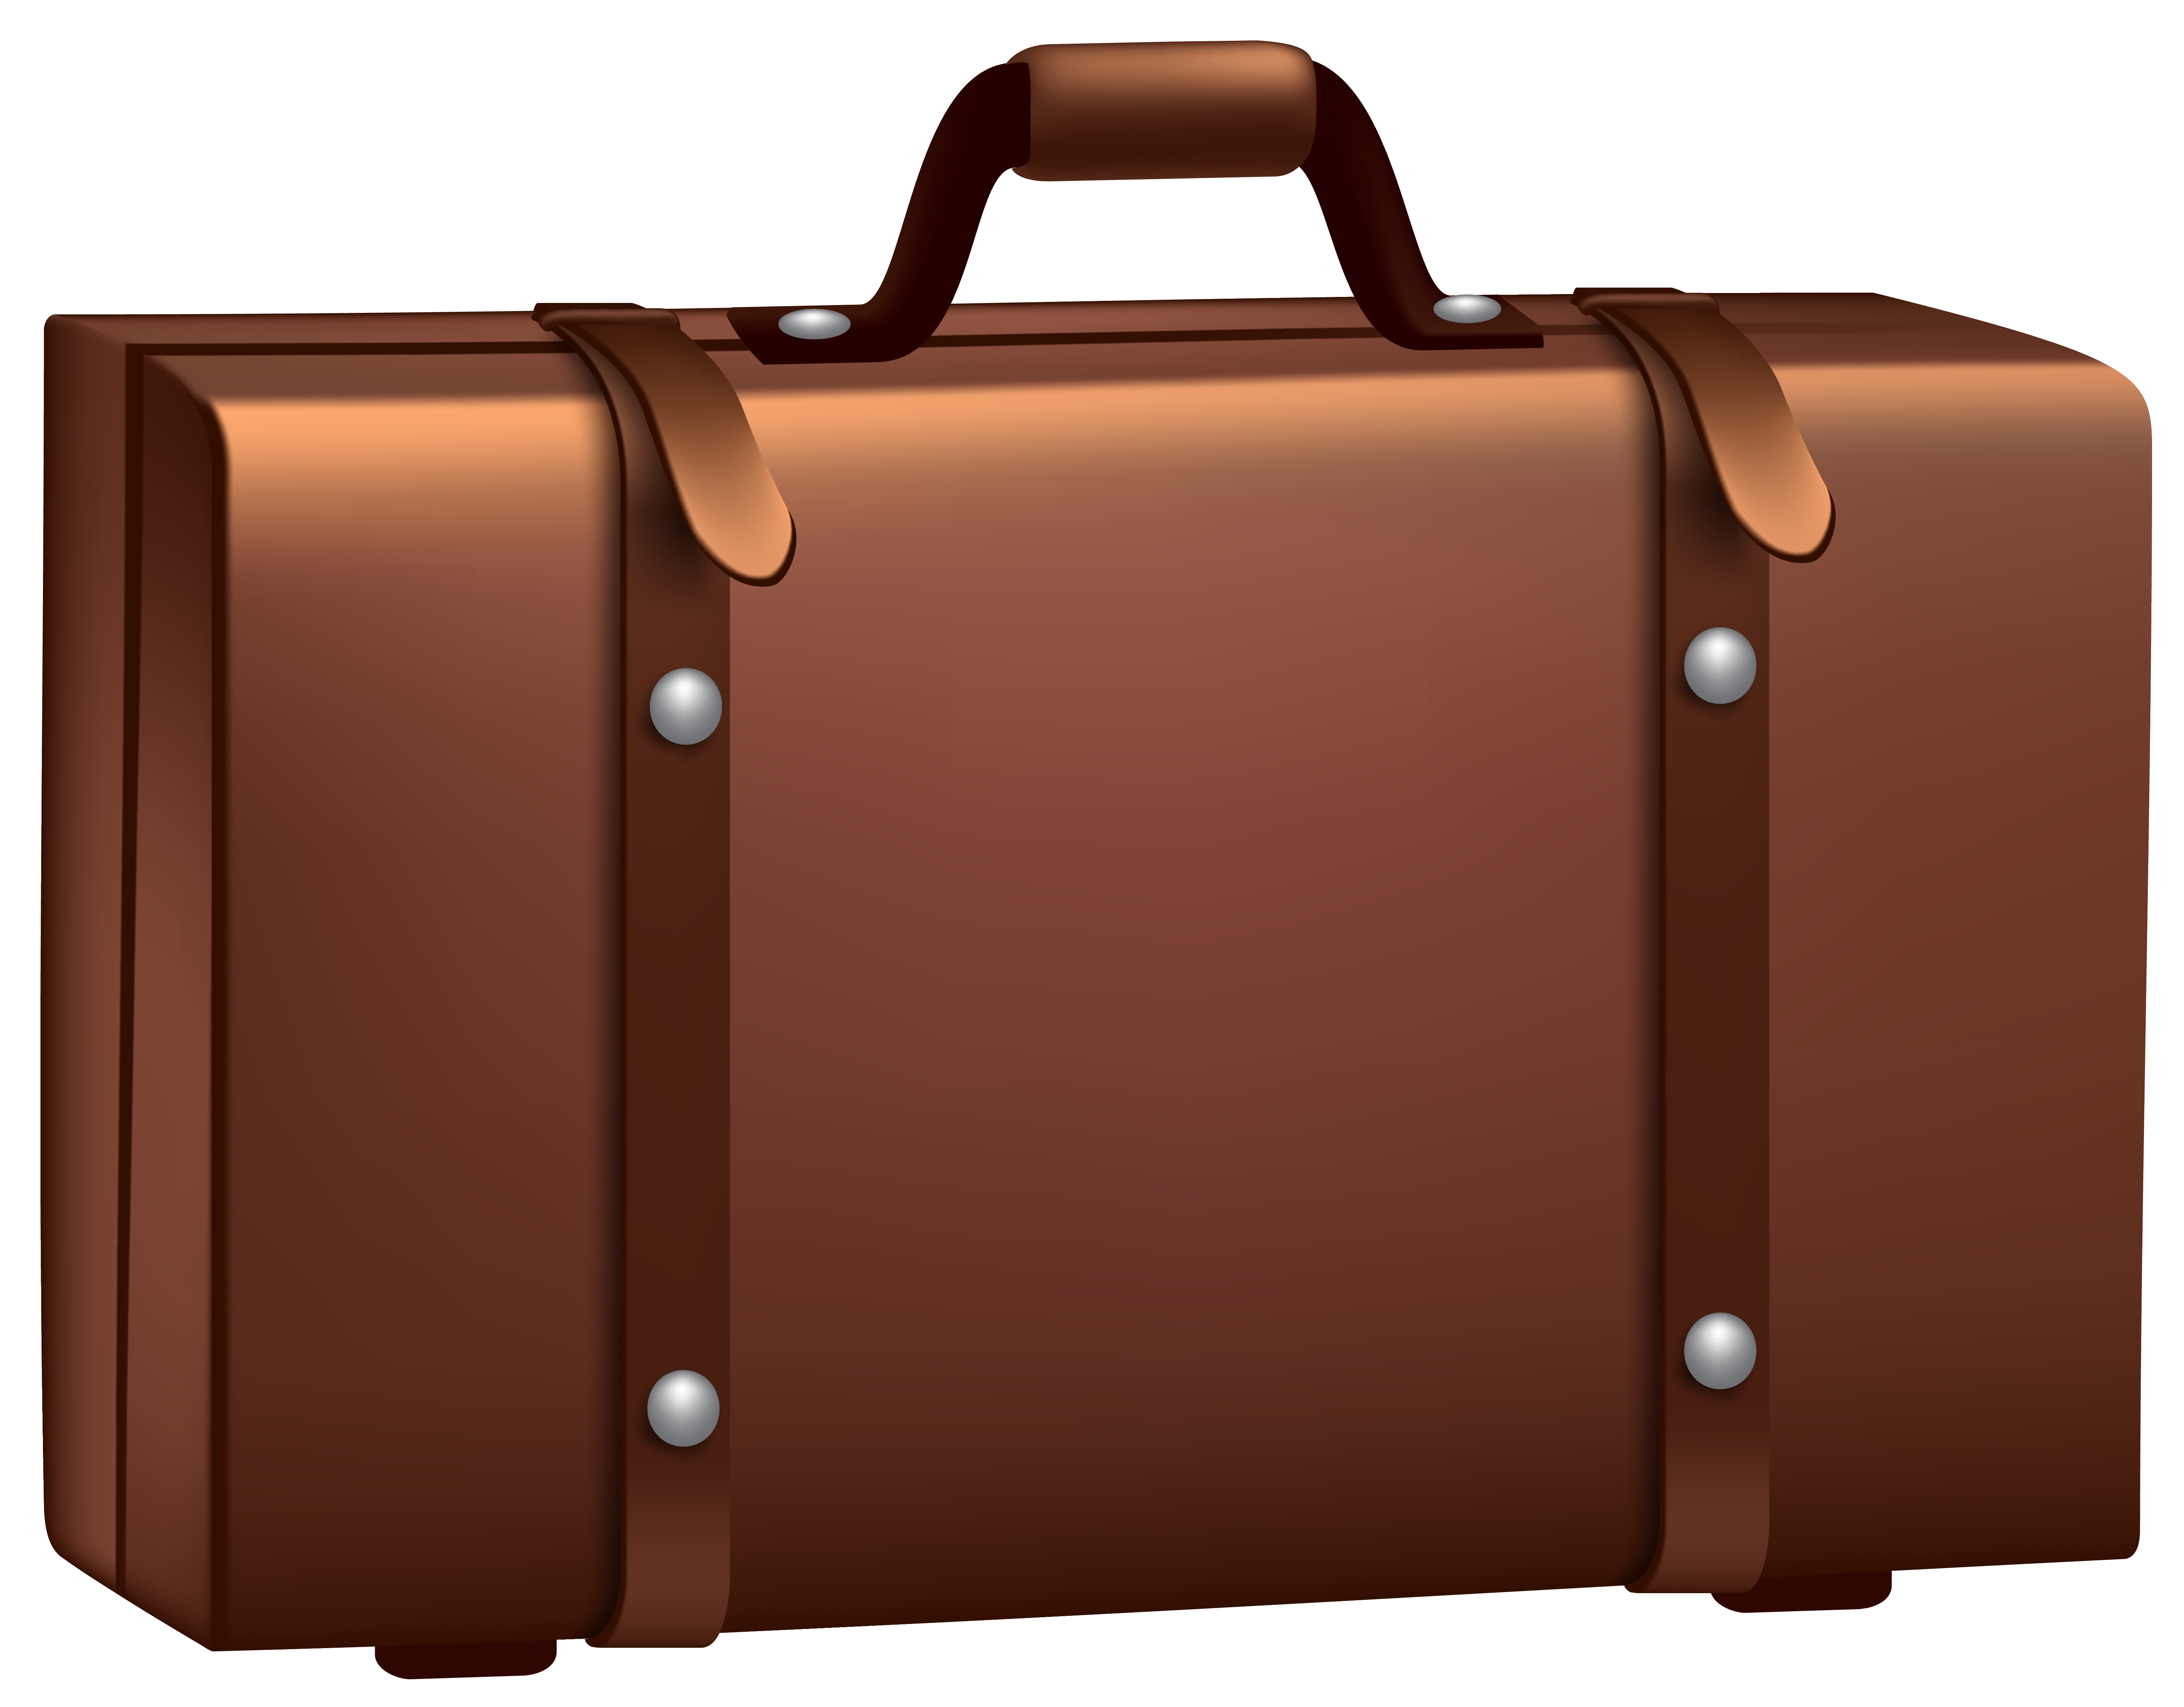 Luggage clipart brown suitcase. Png clip art image